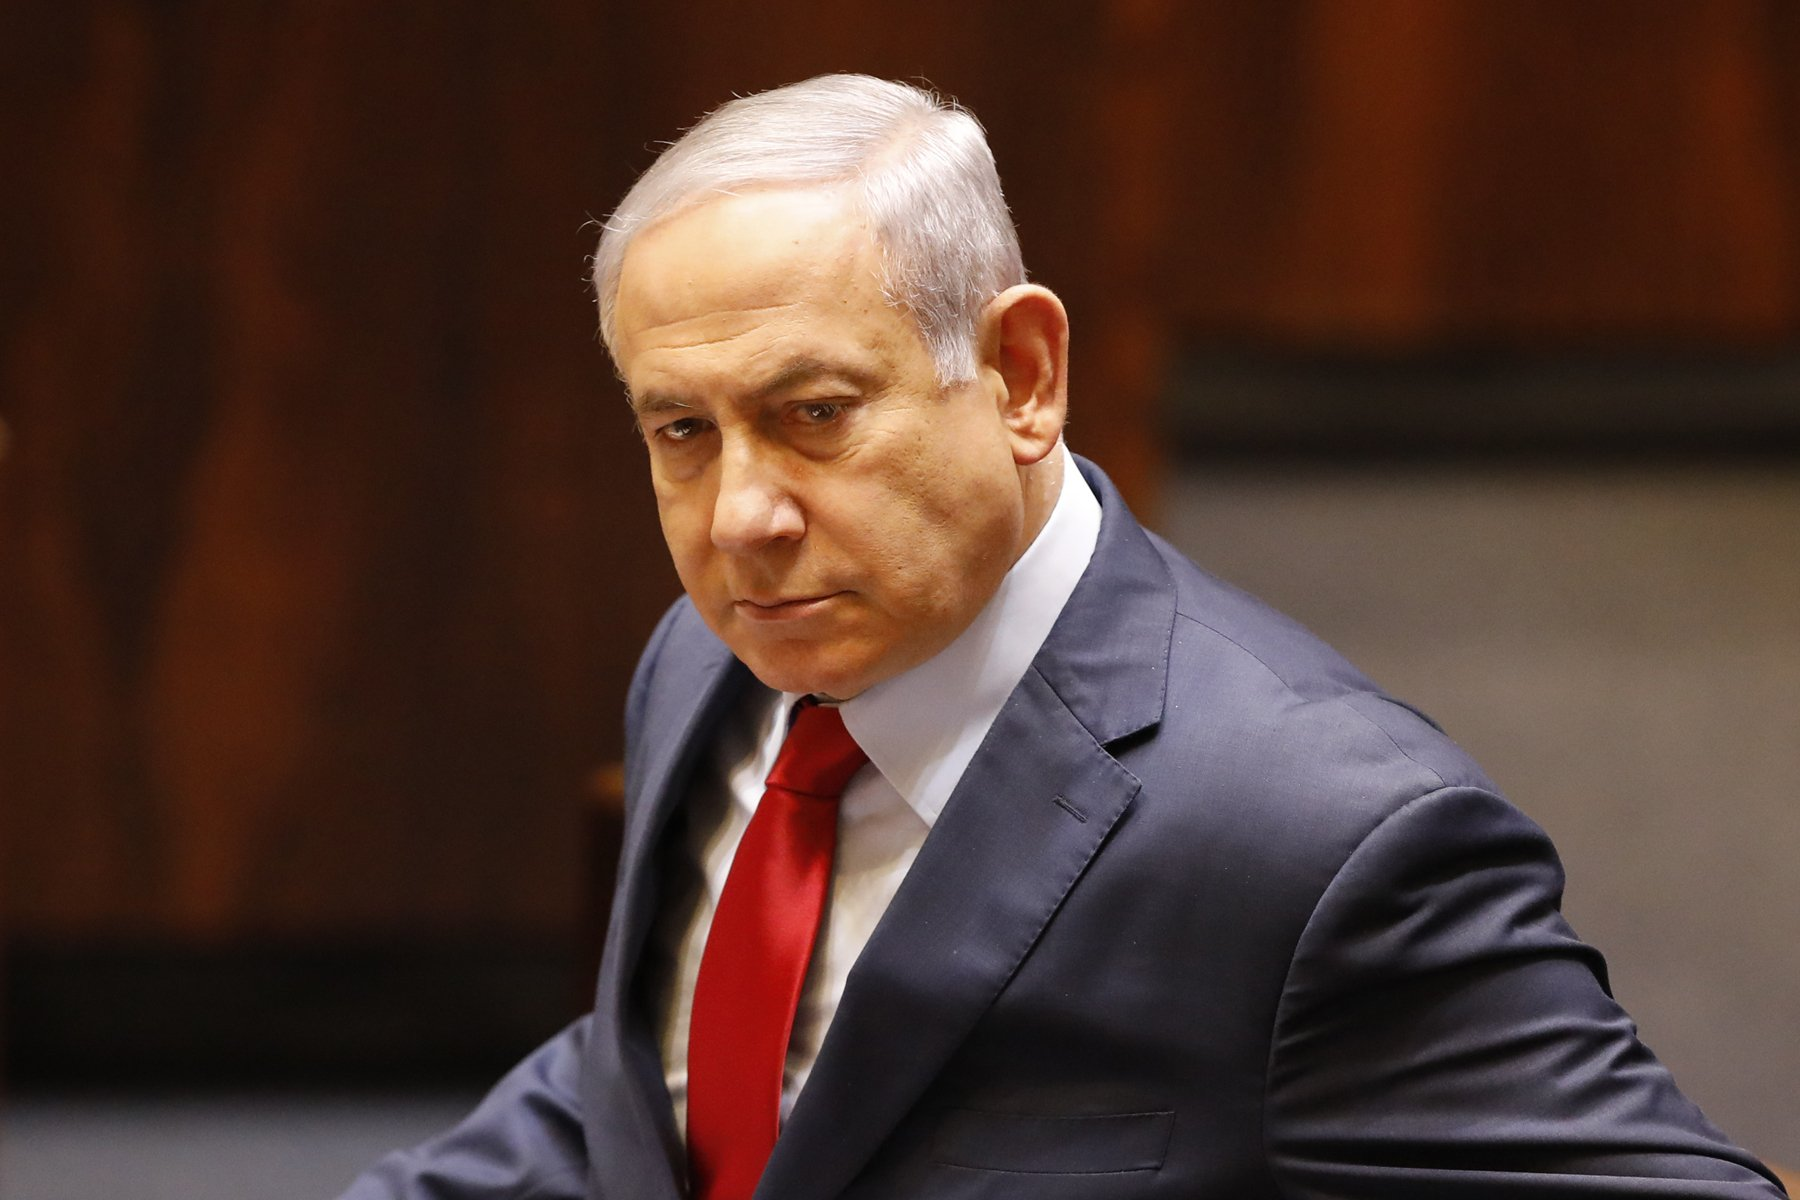 Israel faces repeat 2019 election after parliament dissolves